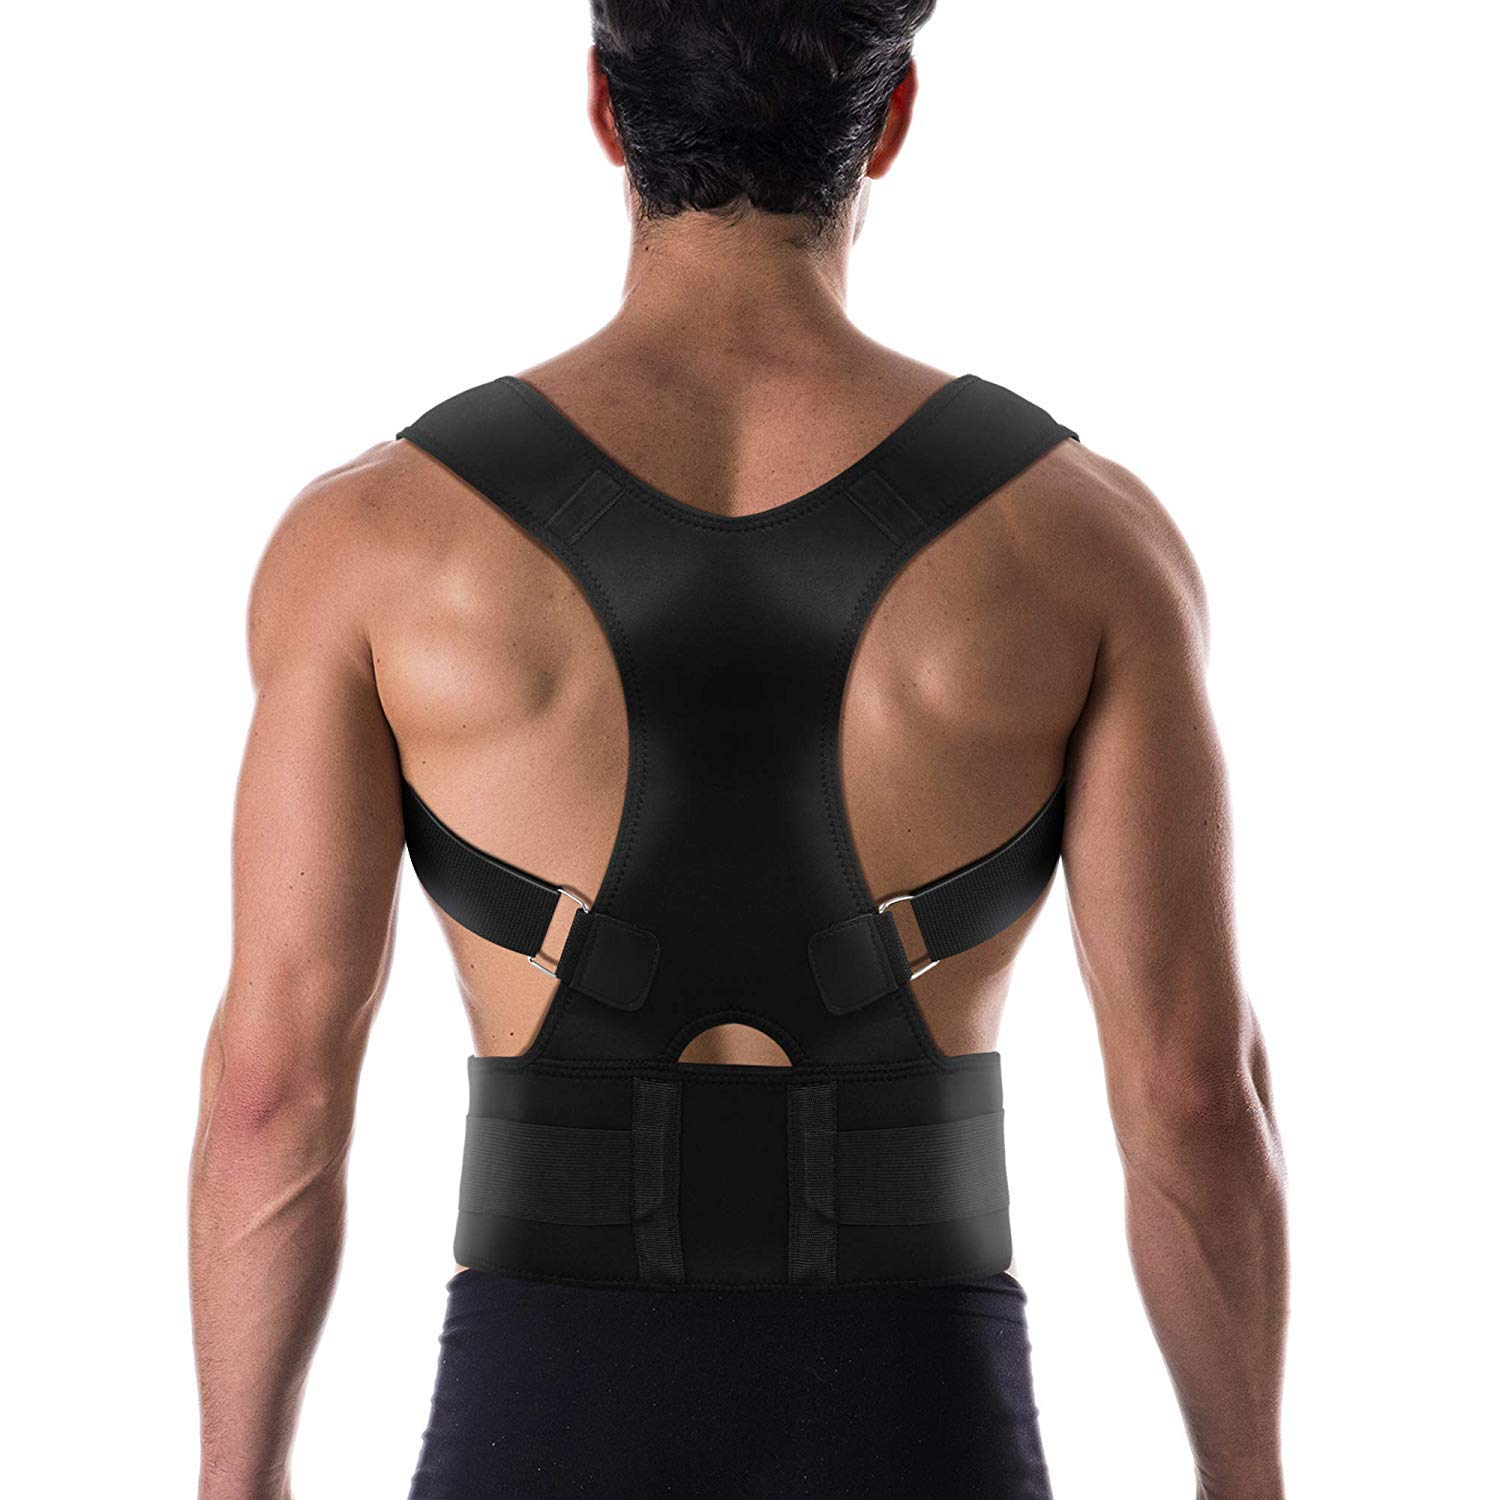 Amazon.com: MEDCorrect Back Brace Posture Corrector for Women & Men | Fully Adjustable Posture Brace | Back Straightener Posture Corrector Relieves Upper ...